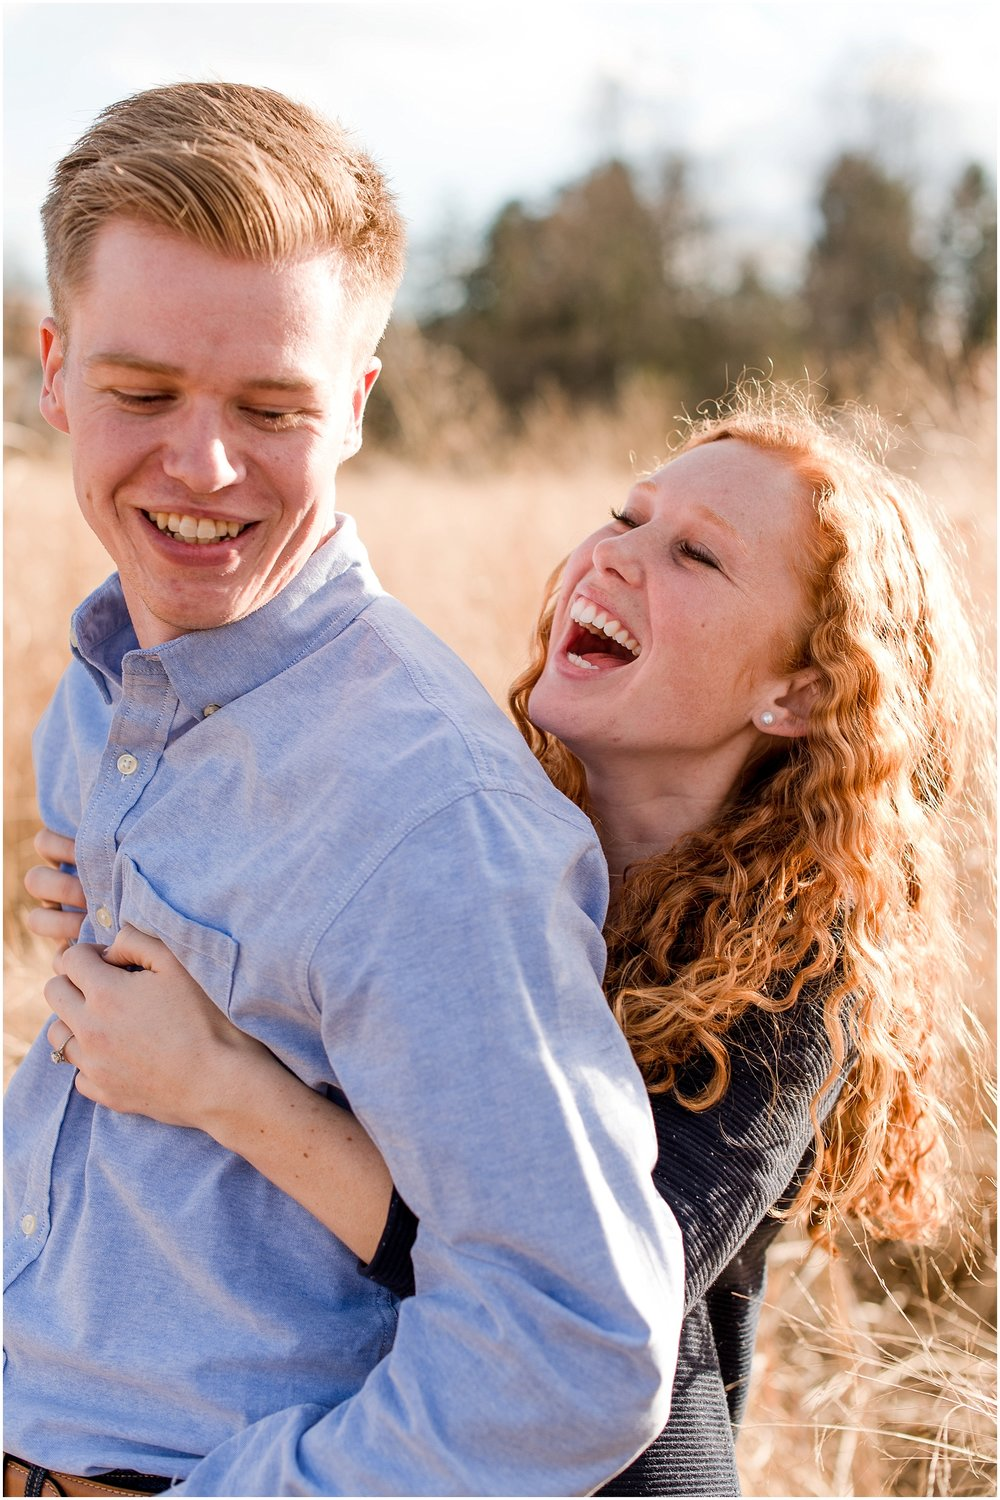 Hannah Leigh Photography State College, PA Engagement Session_3314.jpg